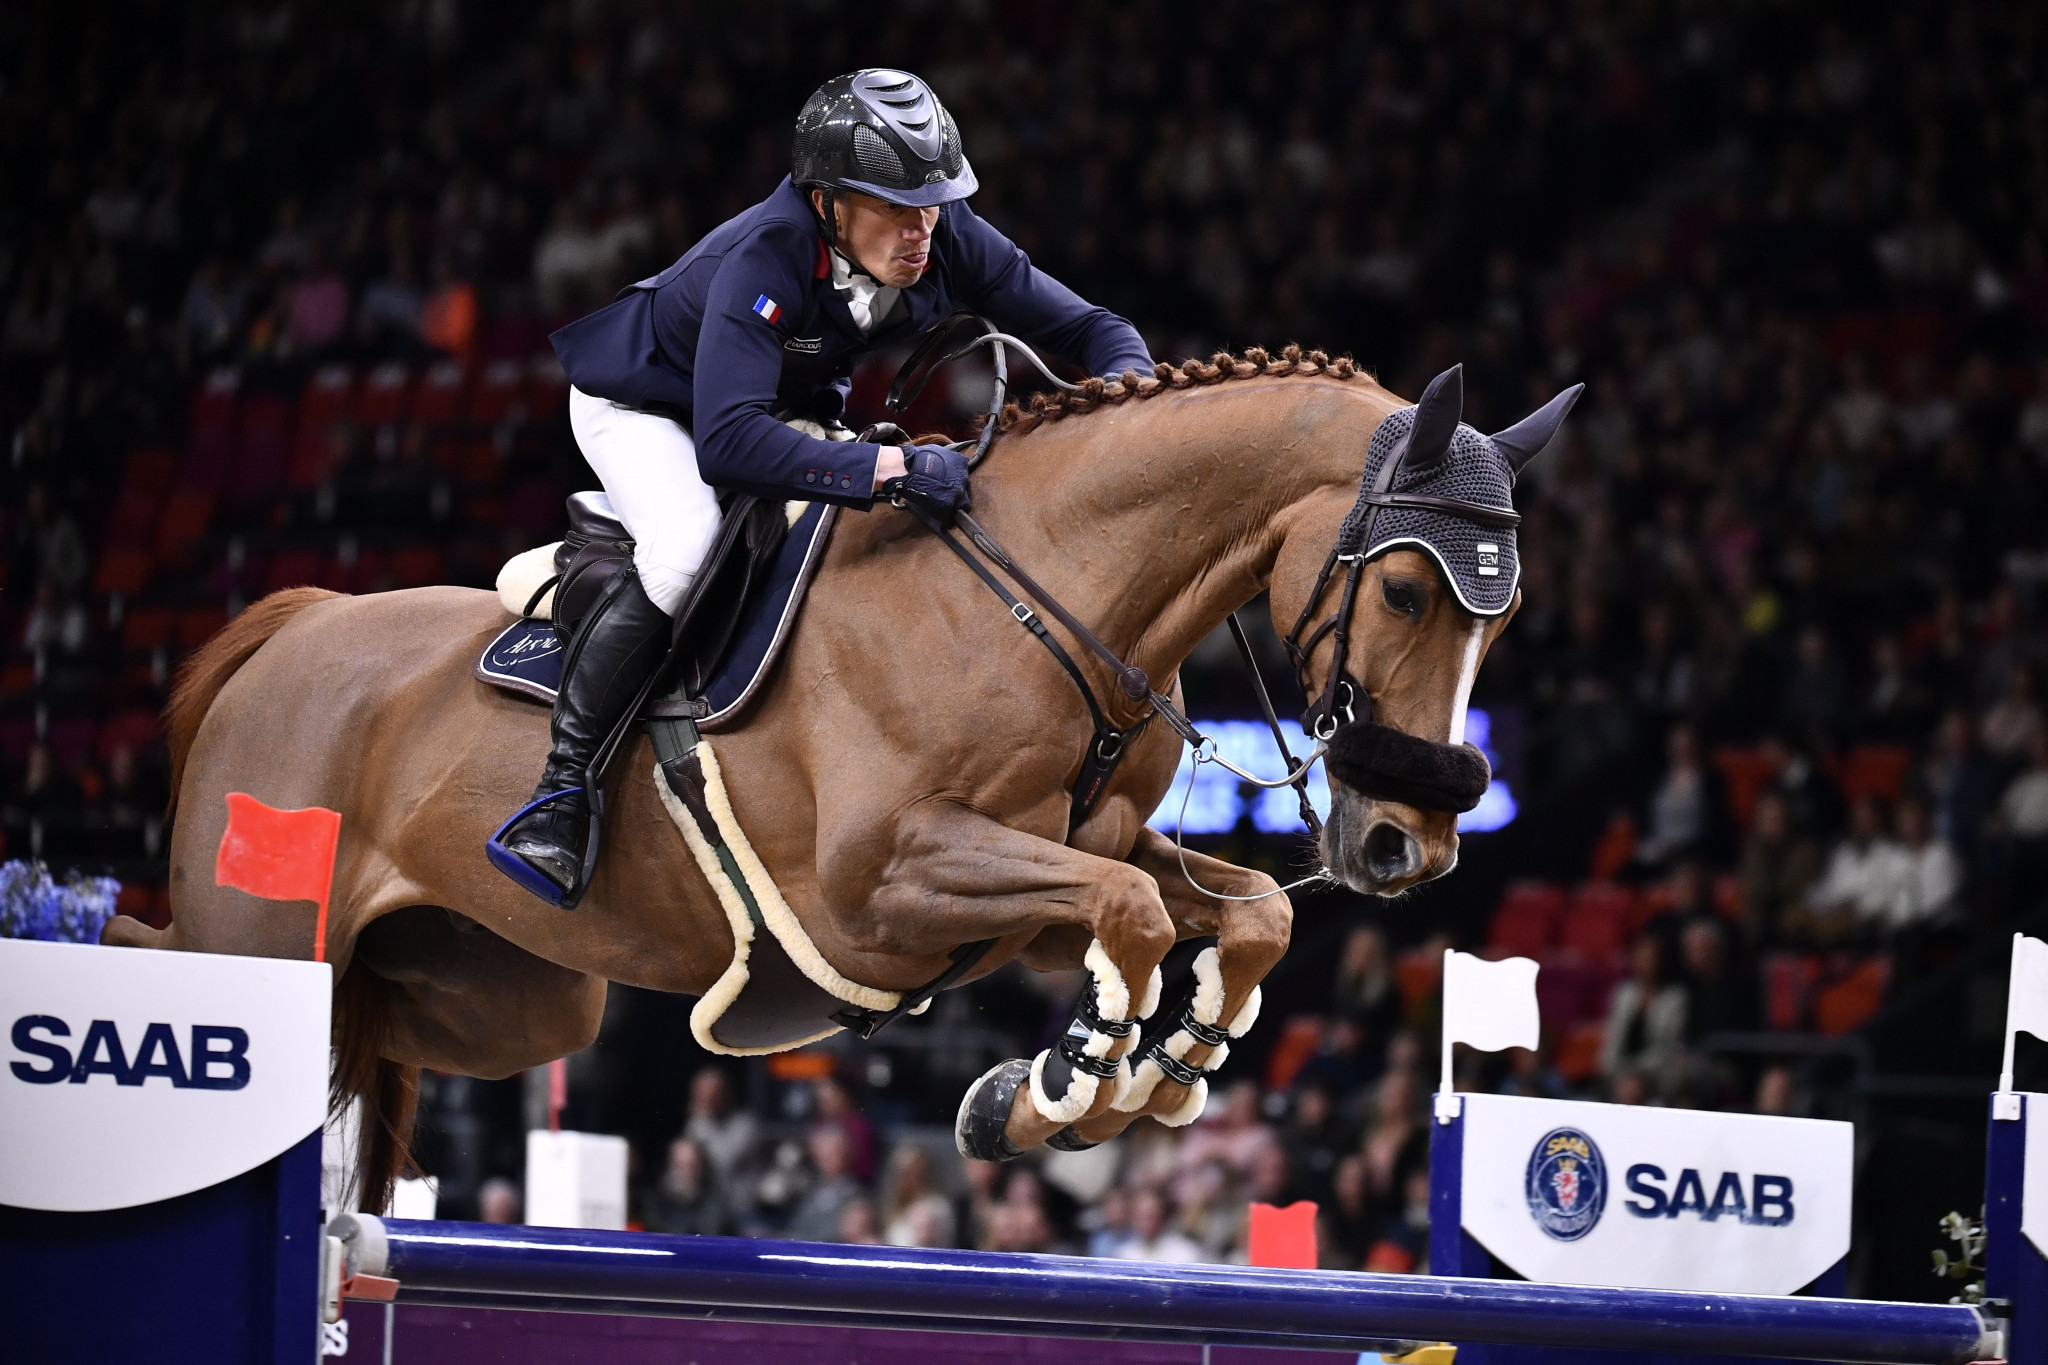 Frenchman Robert wins opening jumping competition at World Equestrian Festival in Aachen